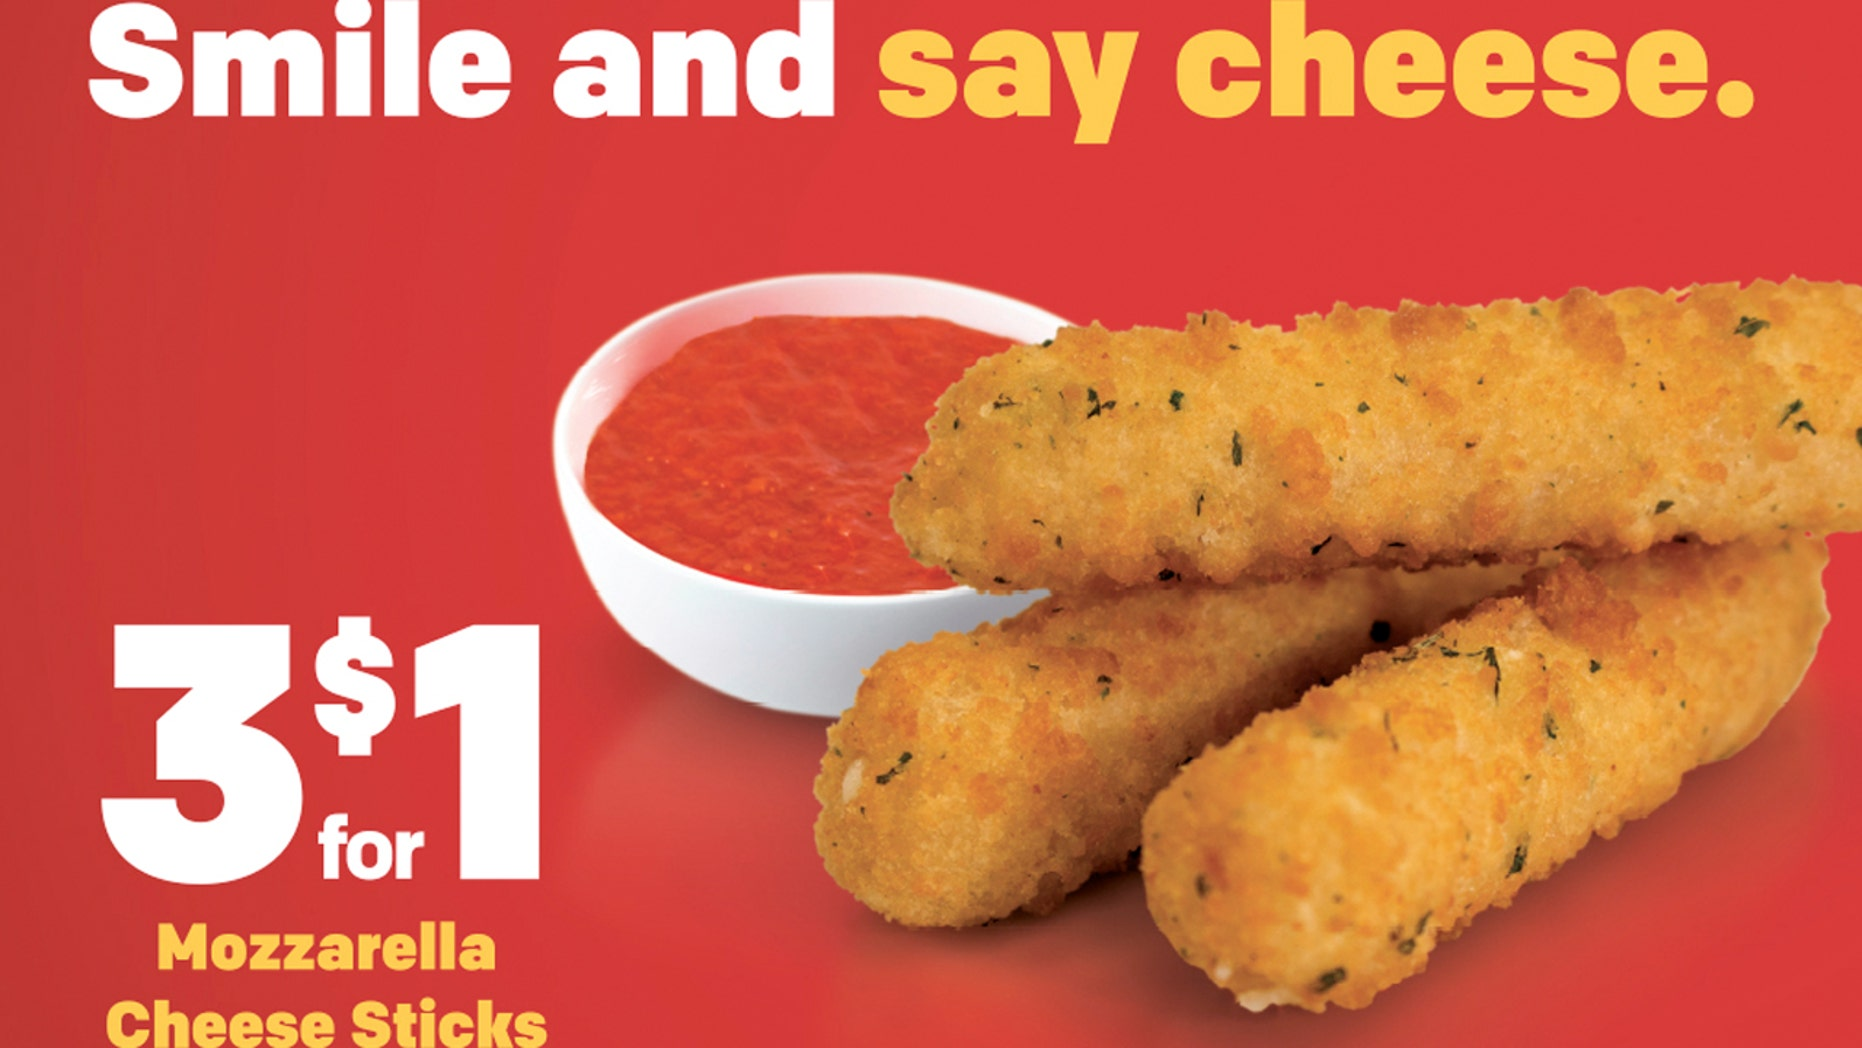 """McDonald's launched mozzarella sticks nationwide this month as part of a new """"McPick 2"""" promotion and sells them separately for 3 for $1."""